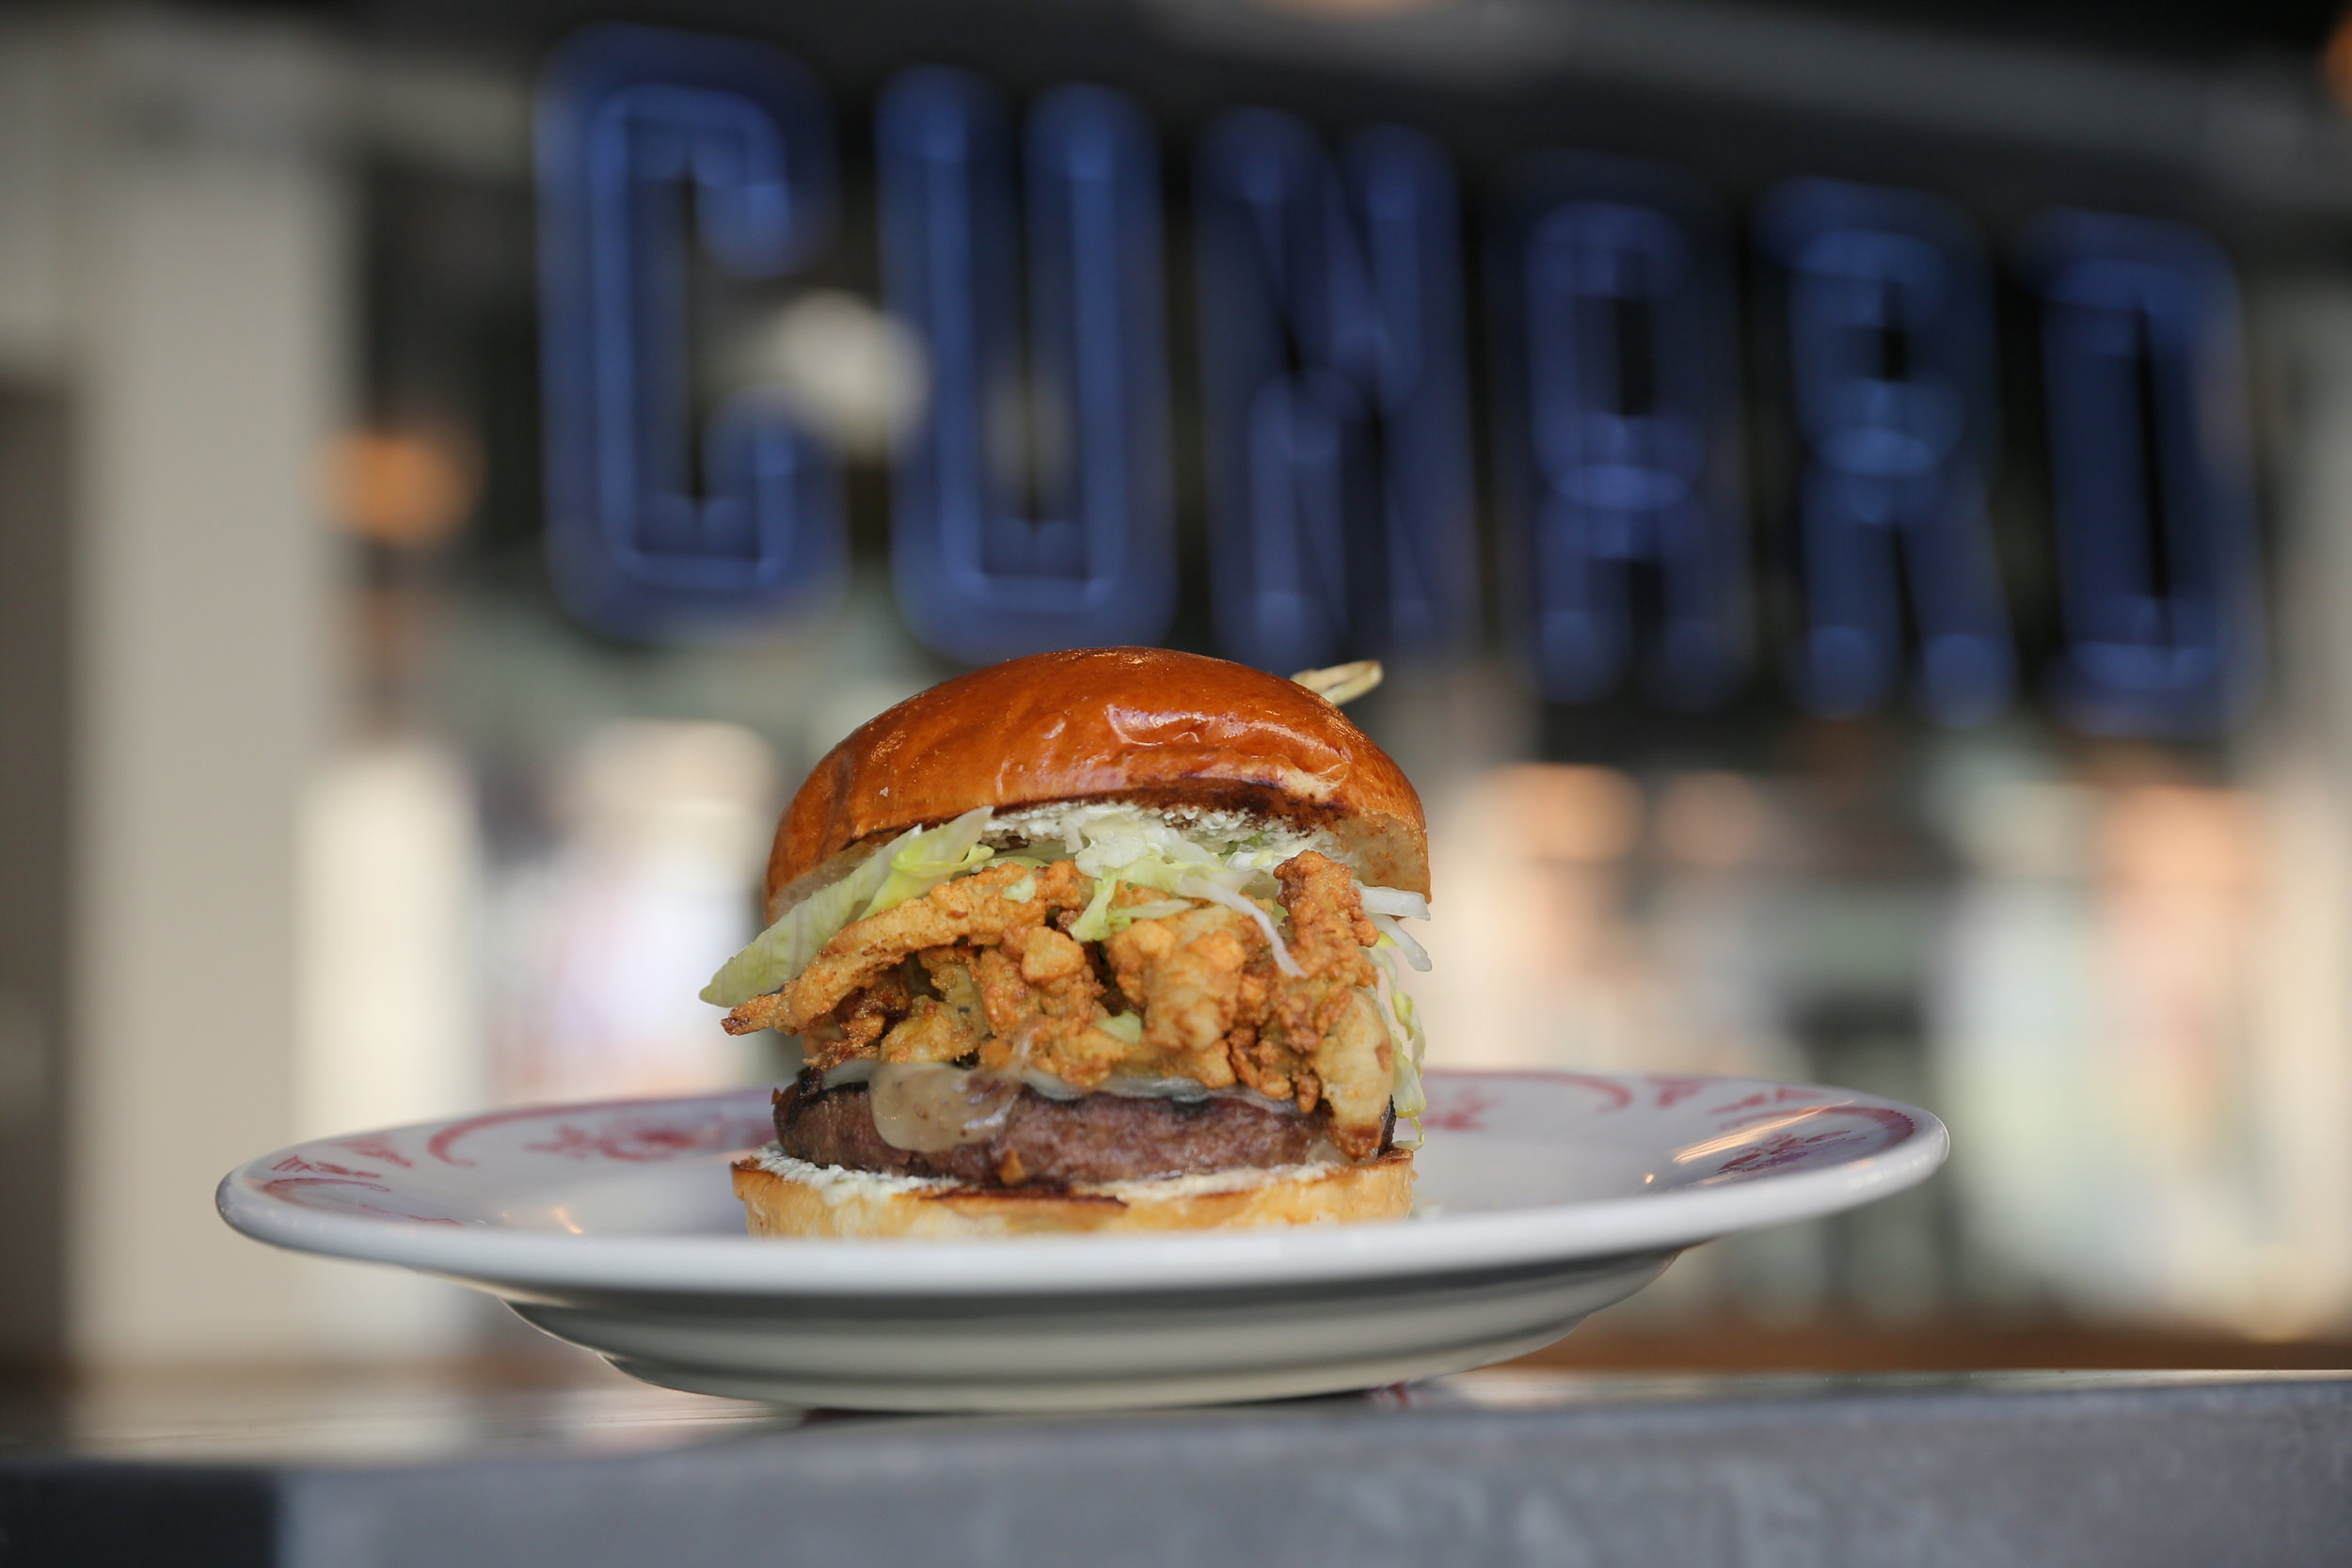 Samuel Cunard Burger: grilled beef patty, fried whole belly clams, shredded lettuce, swiss cheese,house made tartar sauce on a toasted brioche bun.